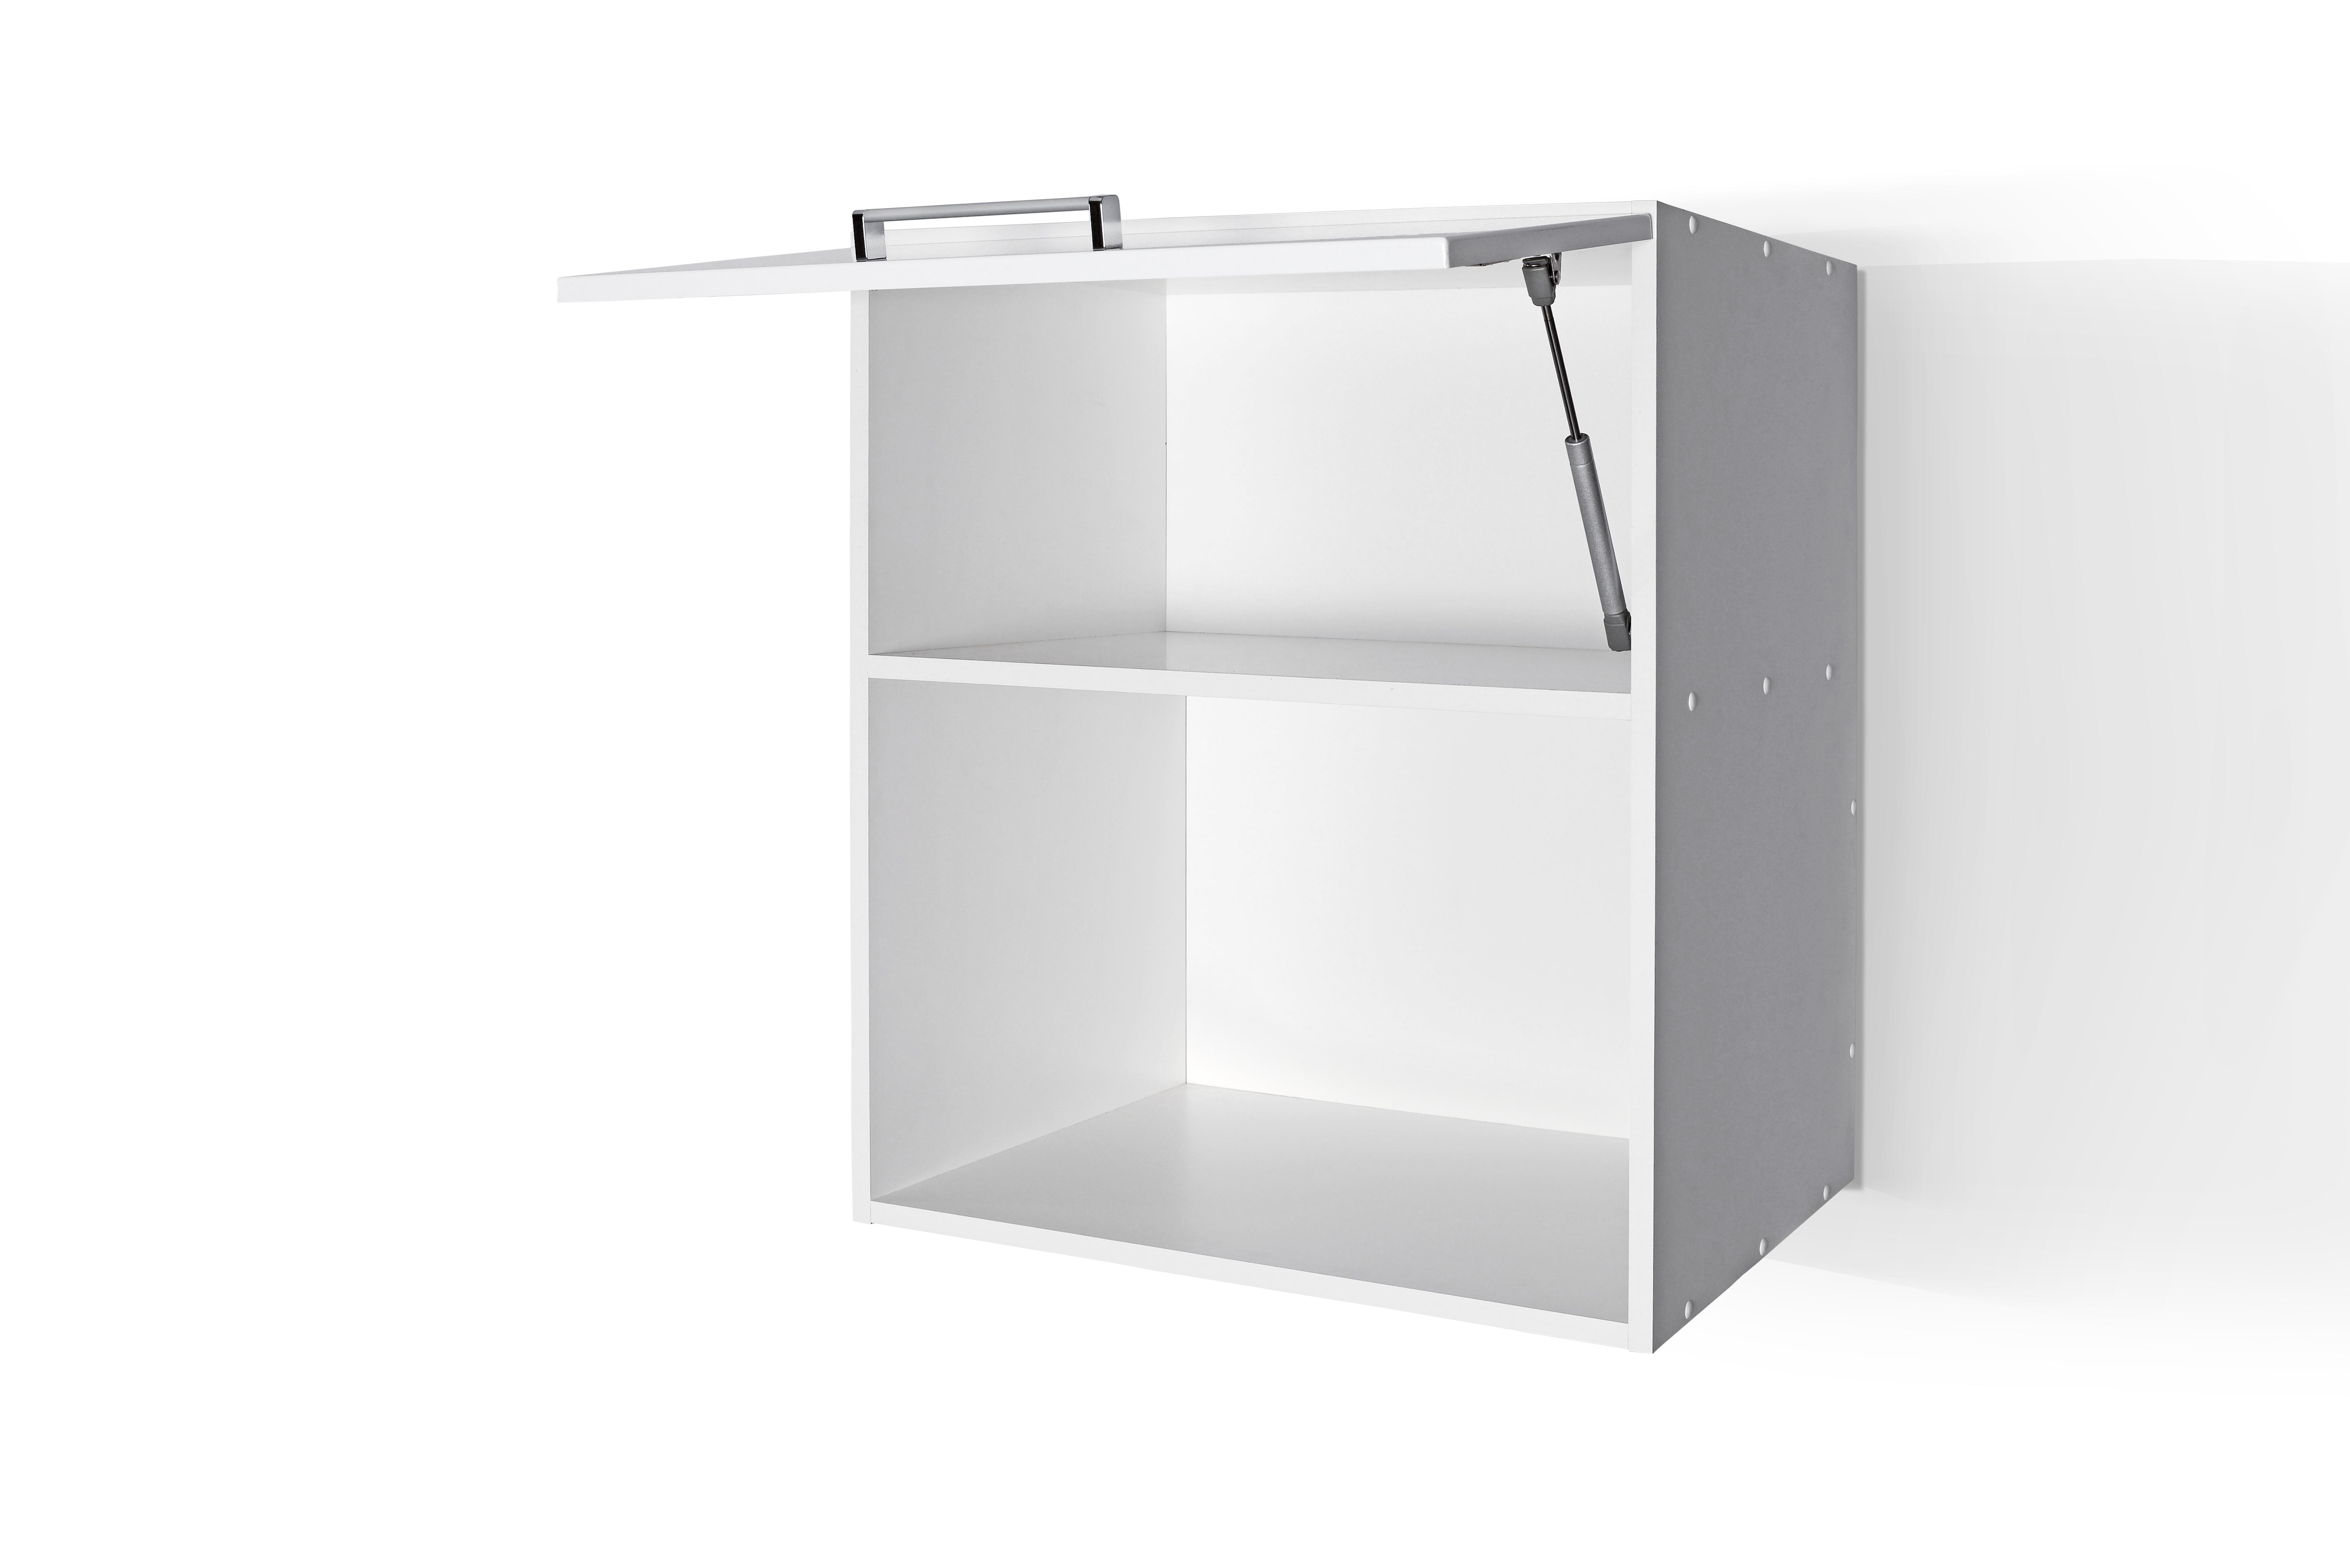 High Gloss White Wall microwave cabinet W601KMI Door Open for Kit